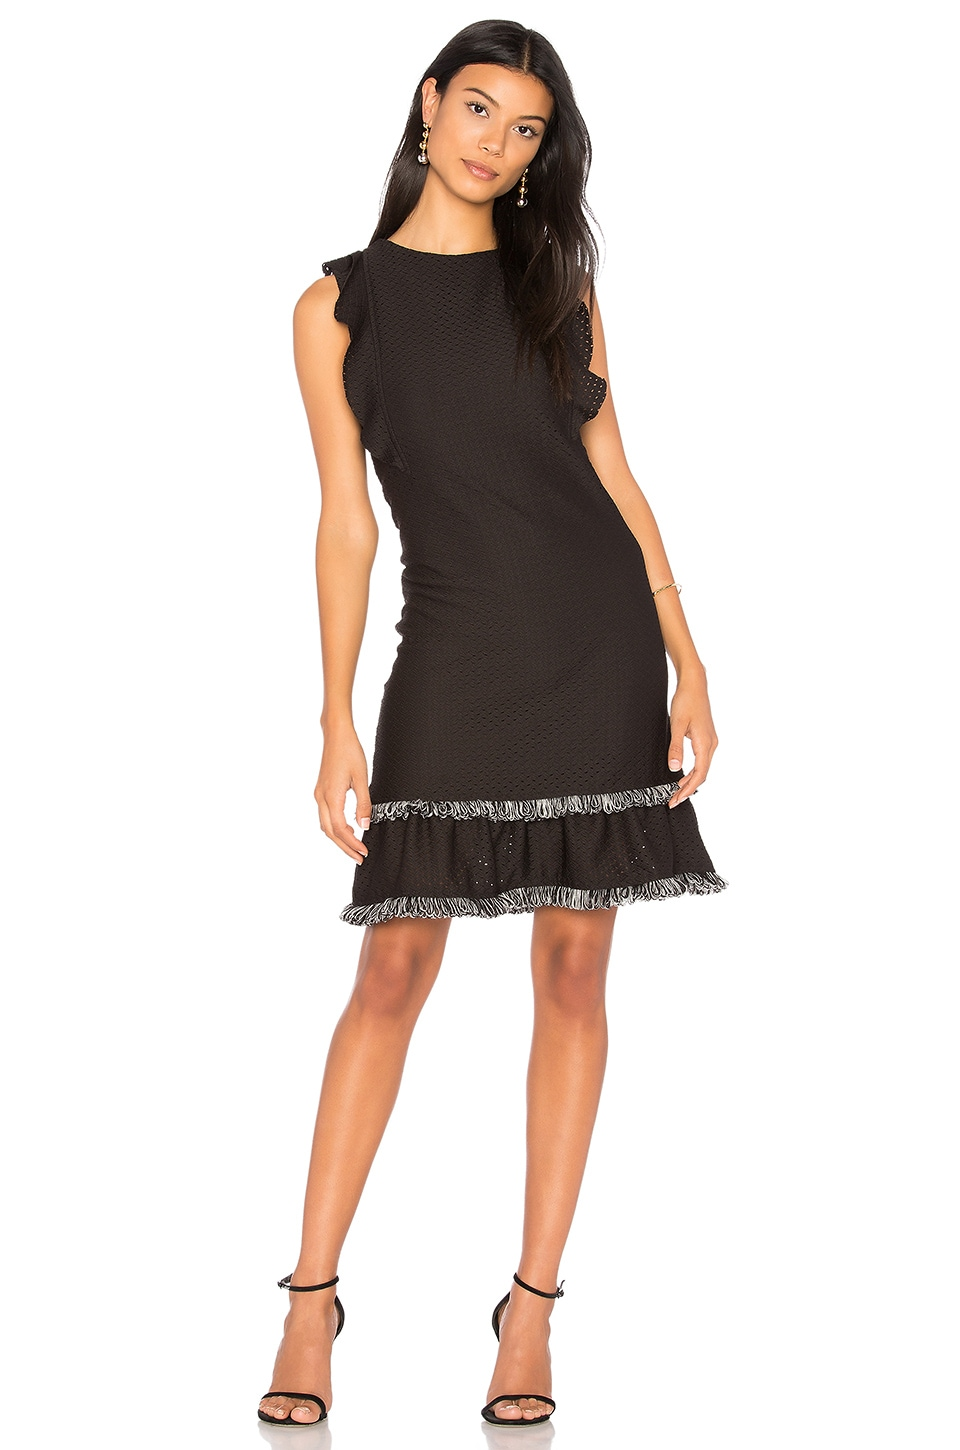 Method Ruffle Dress by Twenty